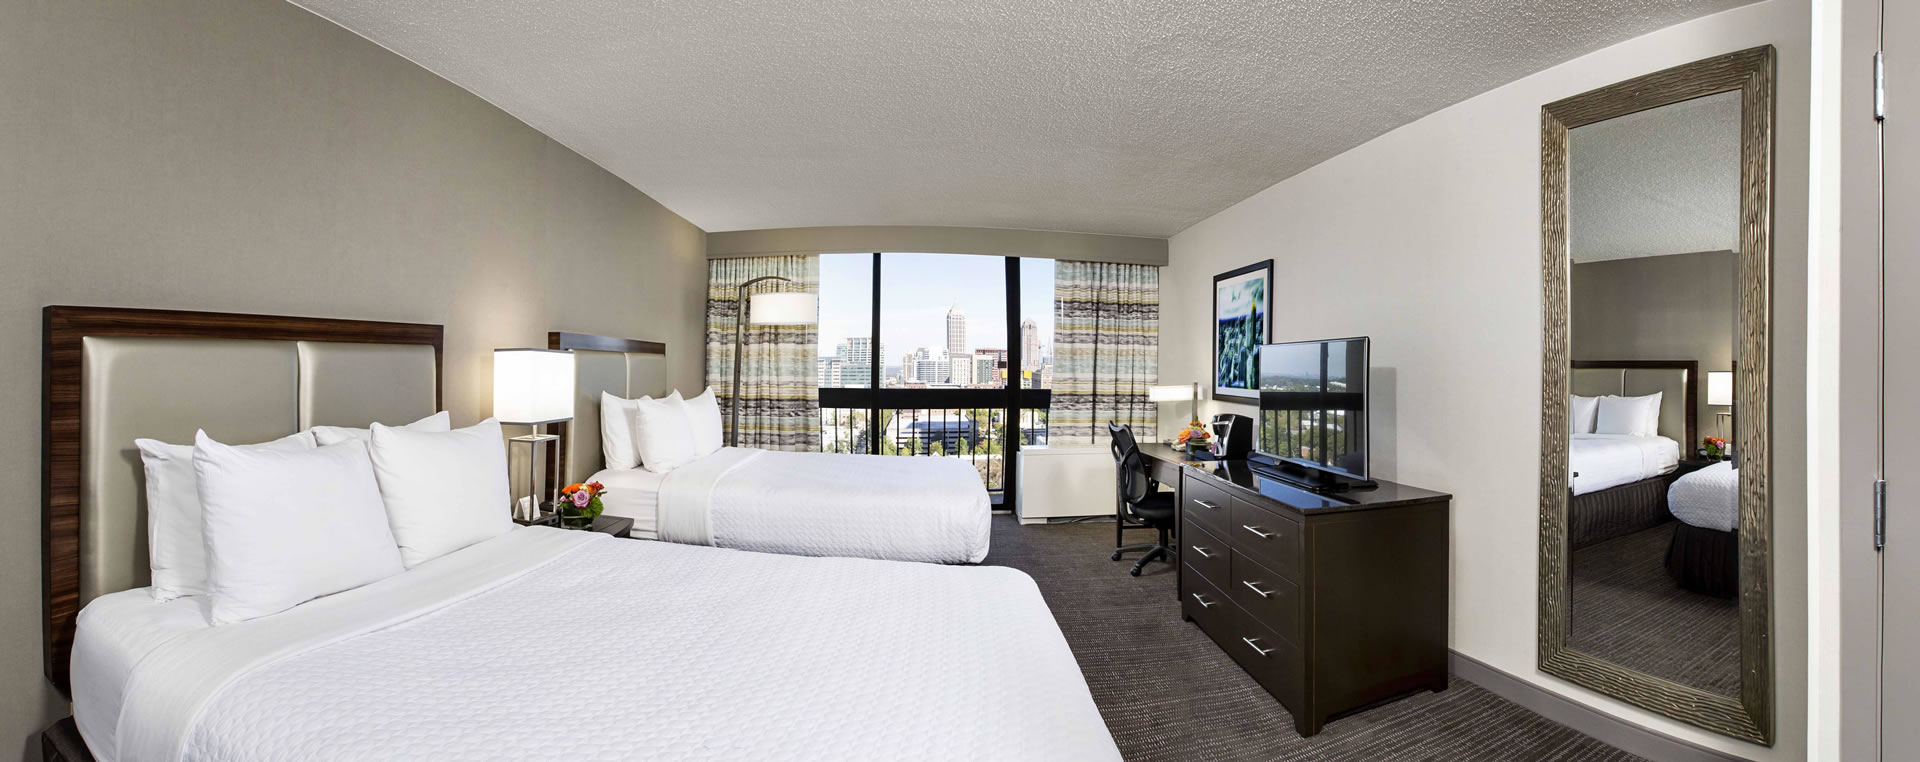 Guest room with two queen beds and a view of the Atlanta skyline at Crowne Plaza Atlanta Midtown.